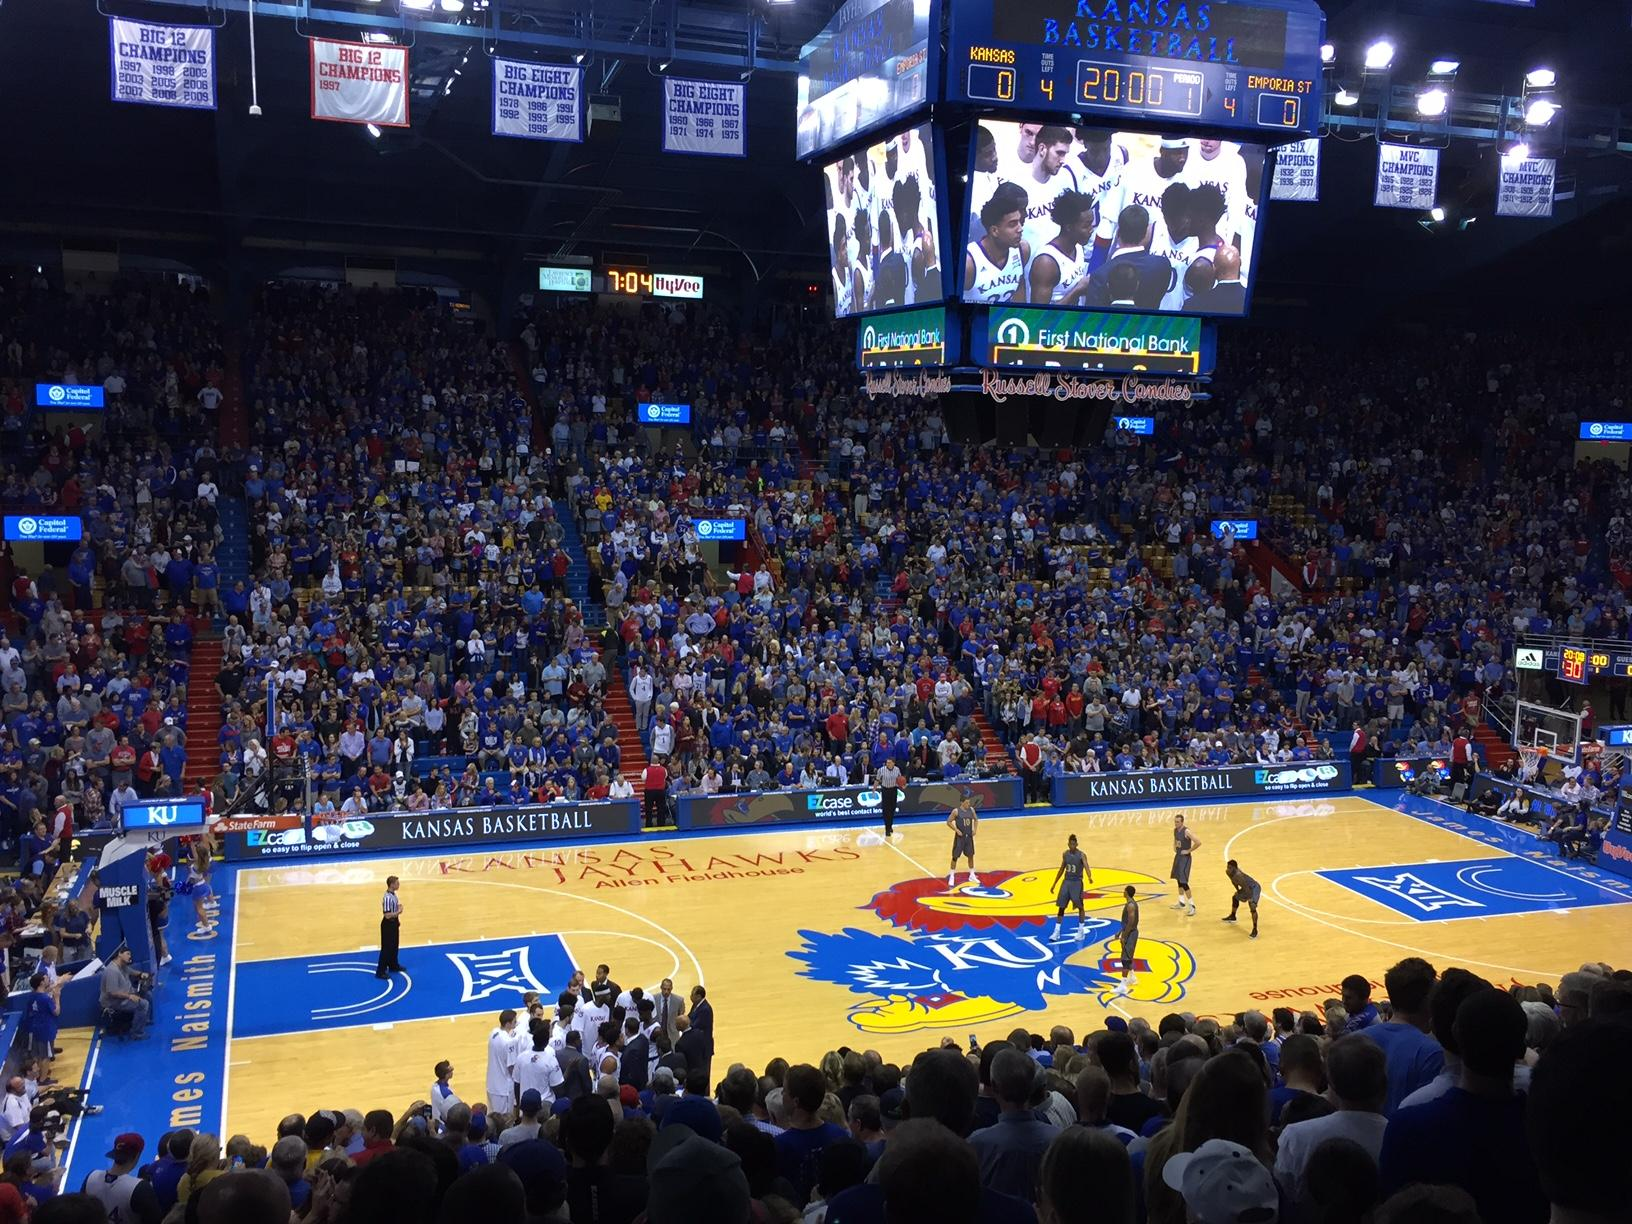 Allen Fieldhouse Section 18 Row 15 Seat 20